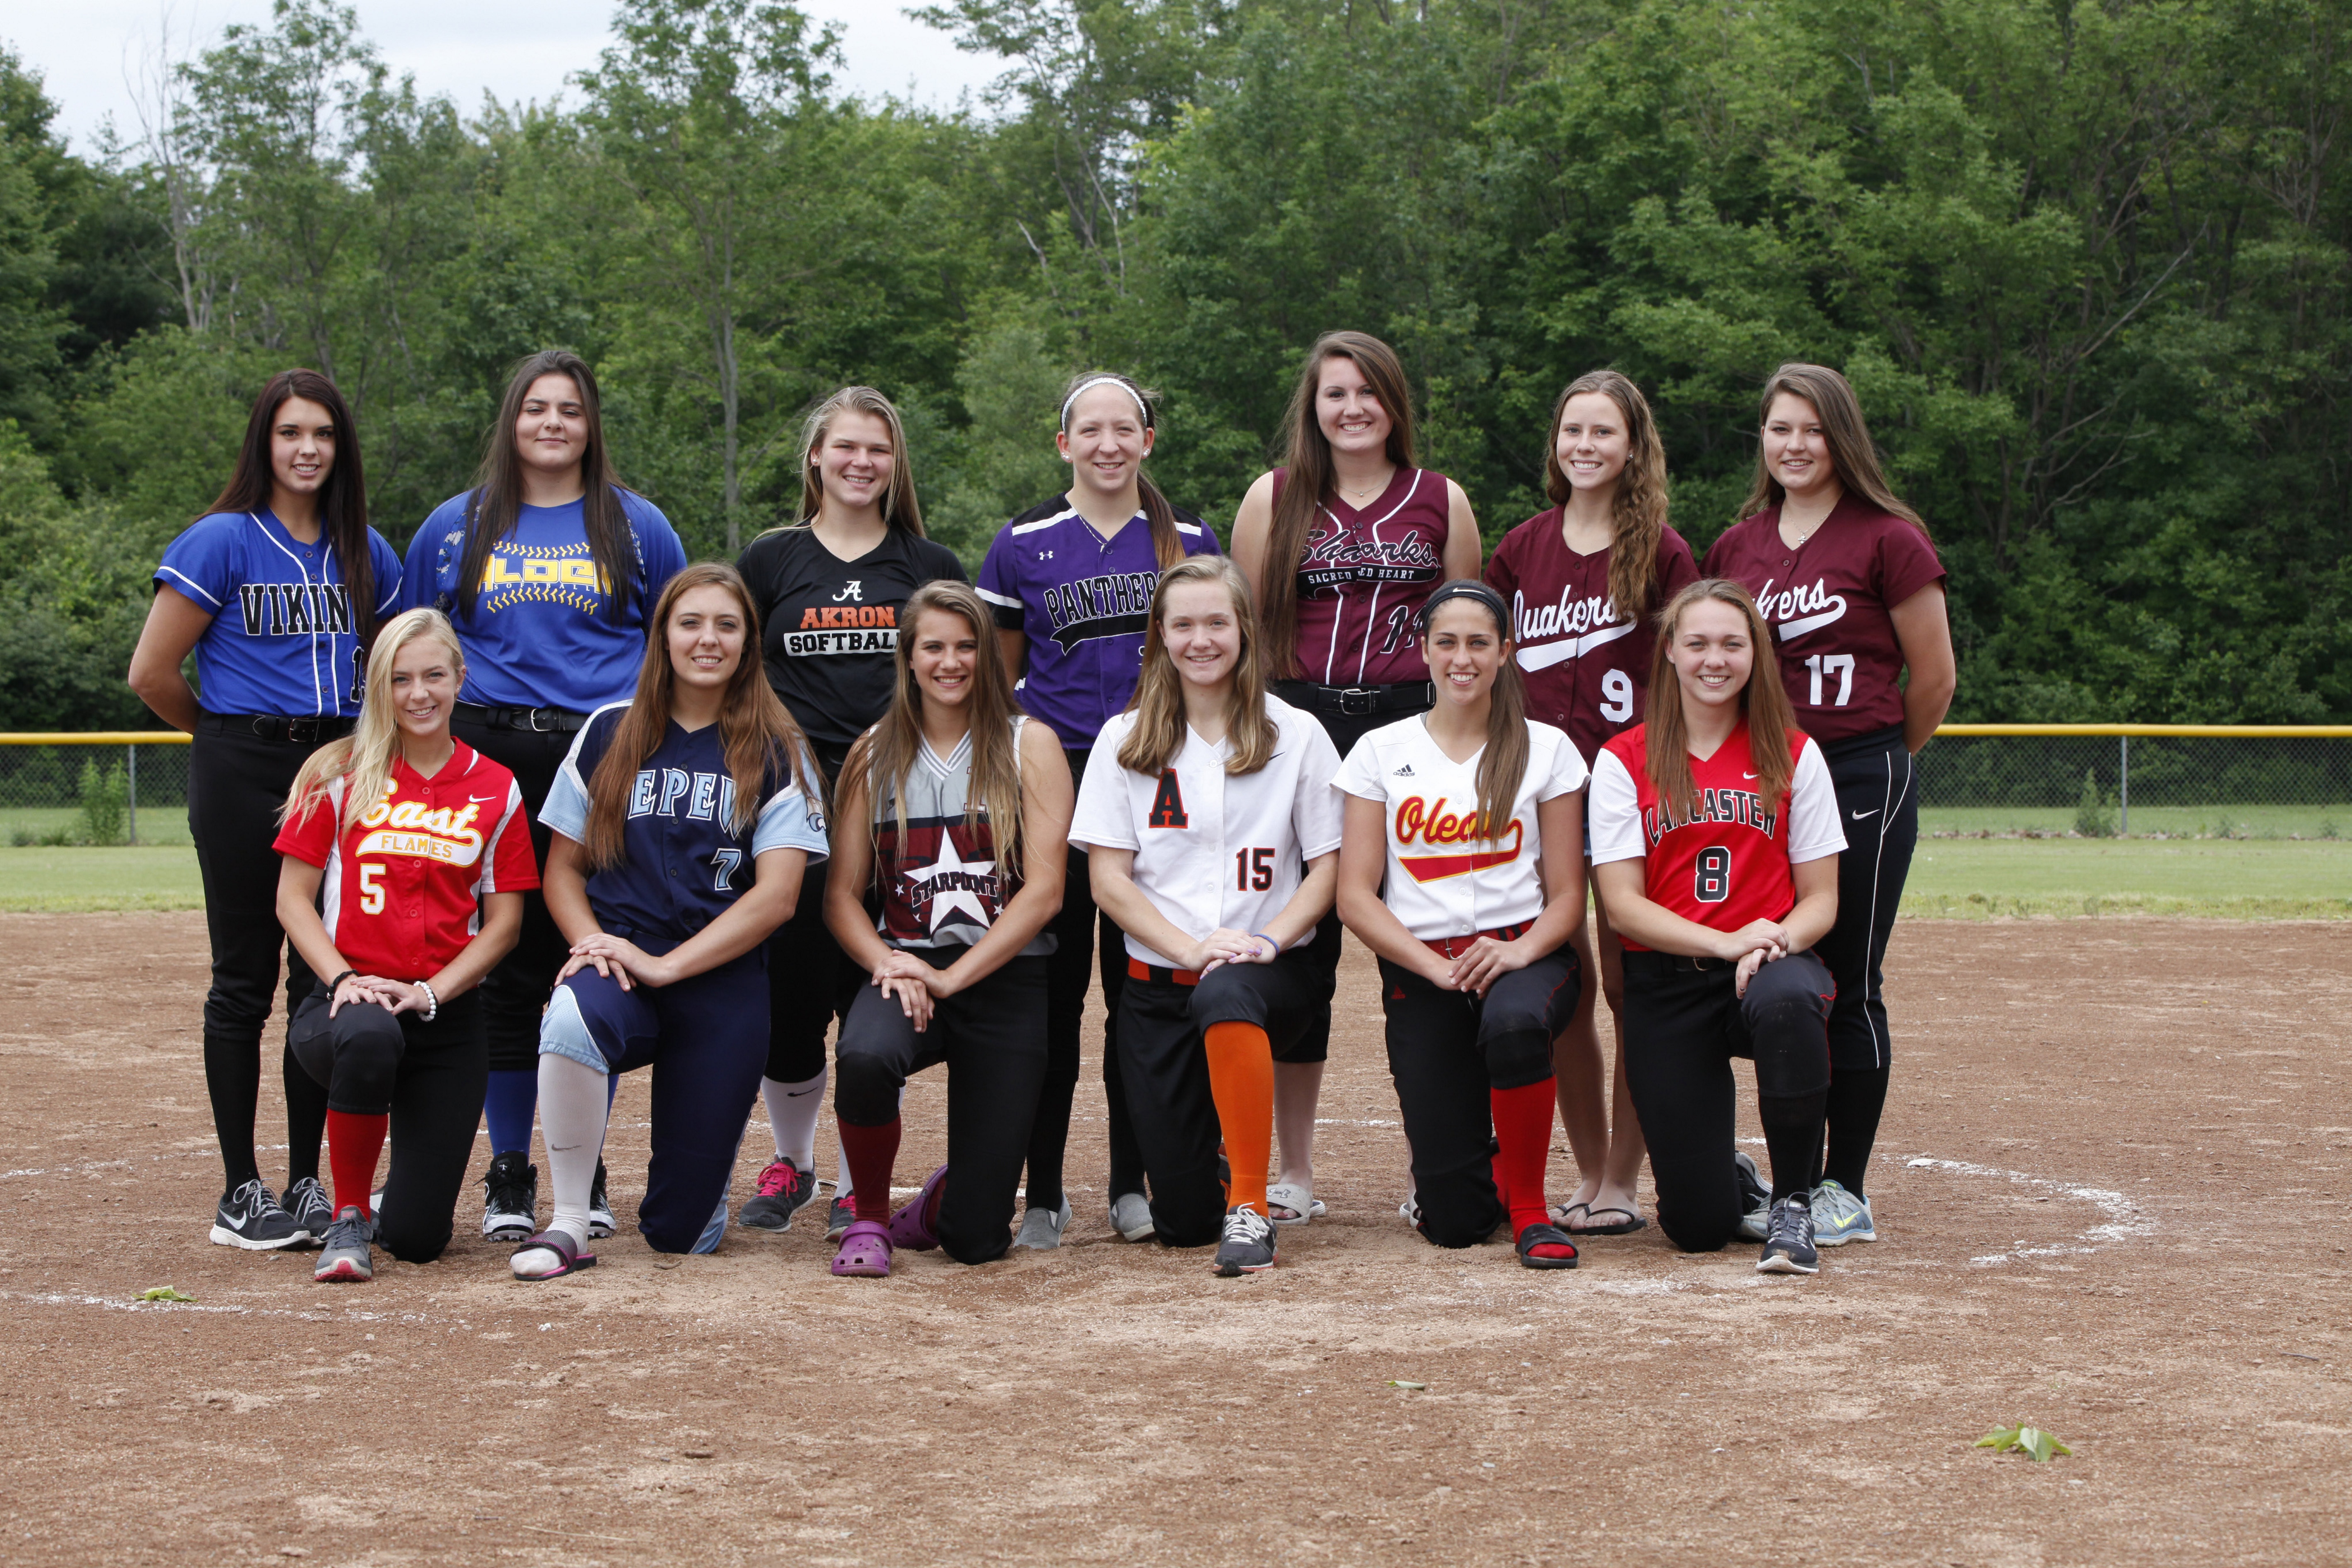 The Coaches All-Western New York squad for 2015: Front, Sara Armstrong (Williamsville East), Karsen Cotton (Depew), Allison Block (Starpoint), Maddie Aston (Amherst), Monica Moses (Olean), Olivia Jankowski (Lancaster). Back row: Alley Cutting (Grand Island), Laura Kratzke (Alden), Abby Stone (Akron), Jessica Wilcox (Pine Valley), Maria Gabriele (Sacred Heart), Rachel Johnson (Orchard Park), Katie Weimer (Orchard Park). Not pictured, Toni Polk (Niagara Falls).